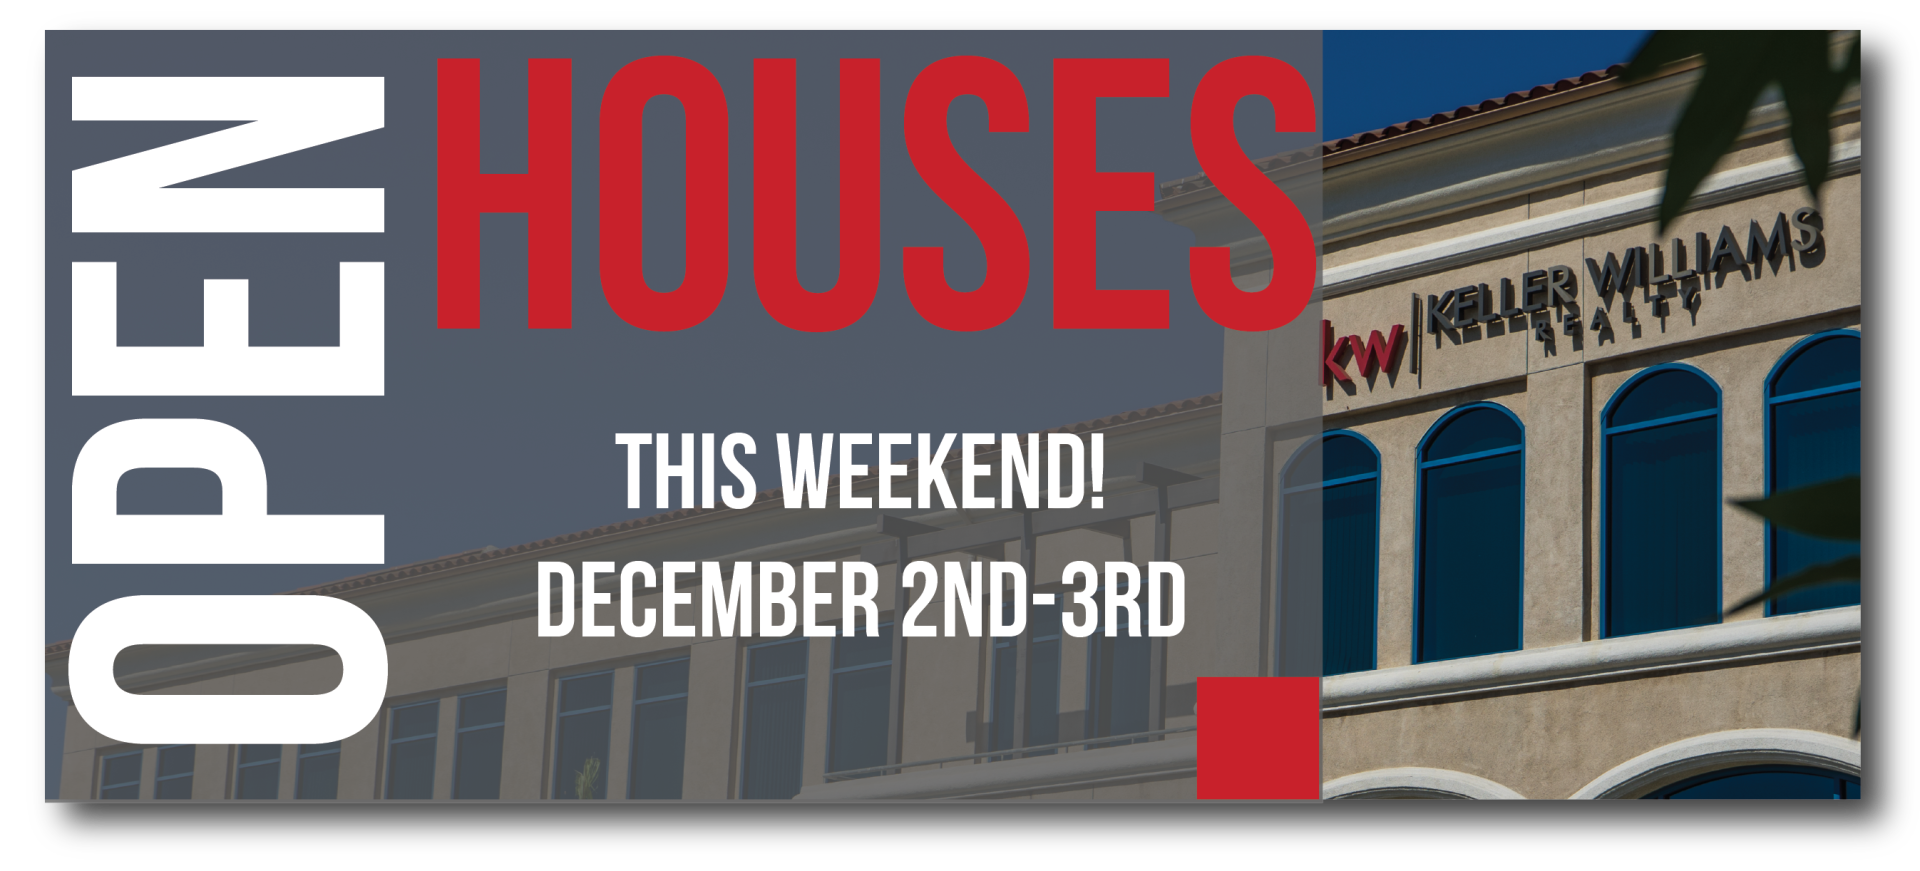 Open Houses This Weekend Dec. 2nd-3rd